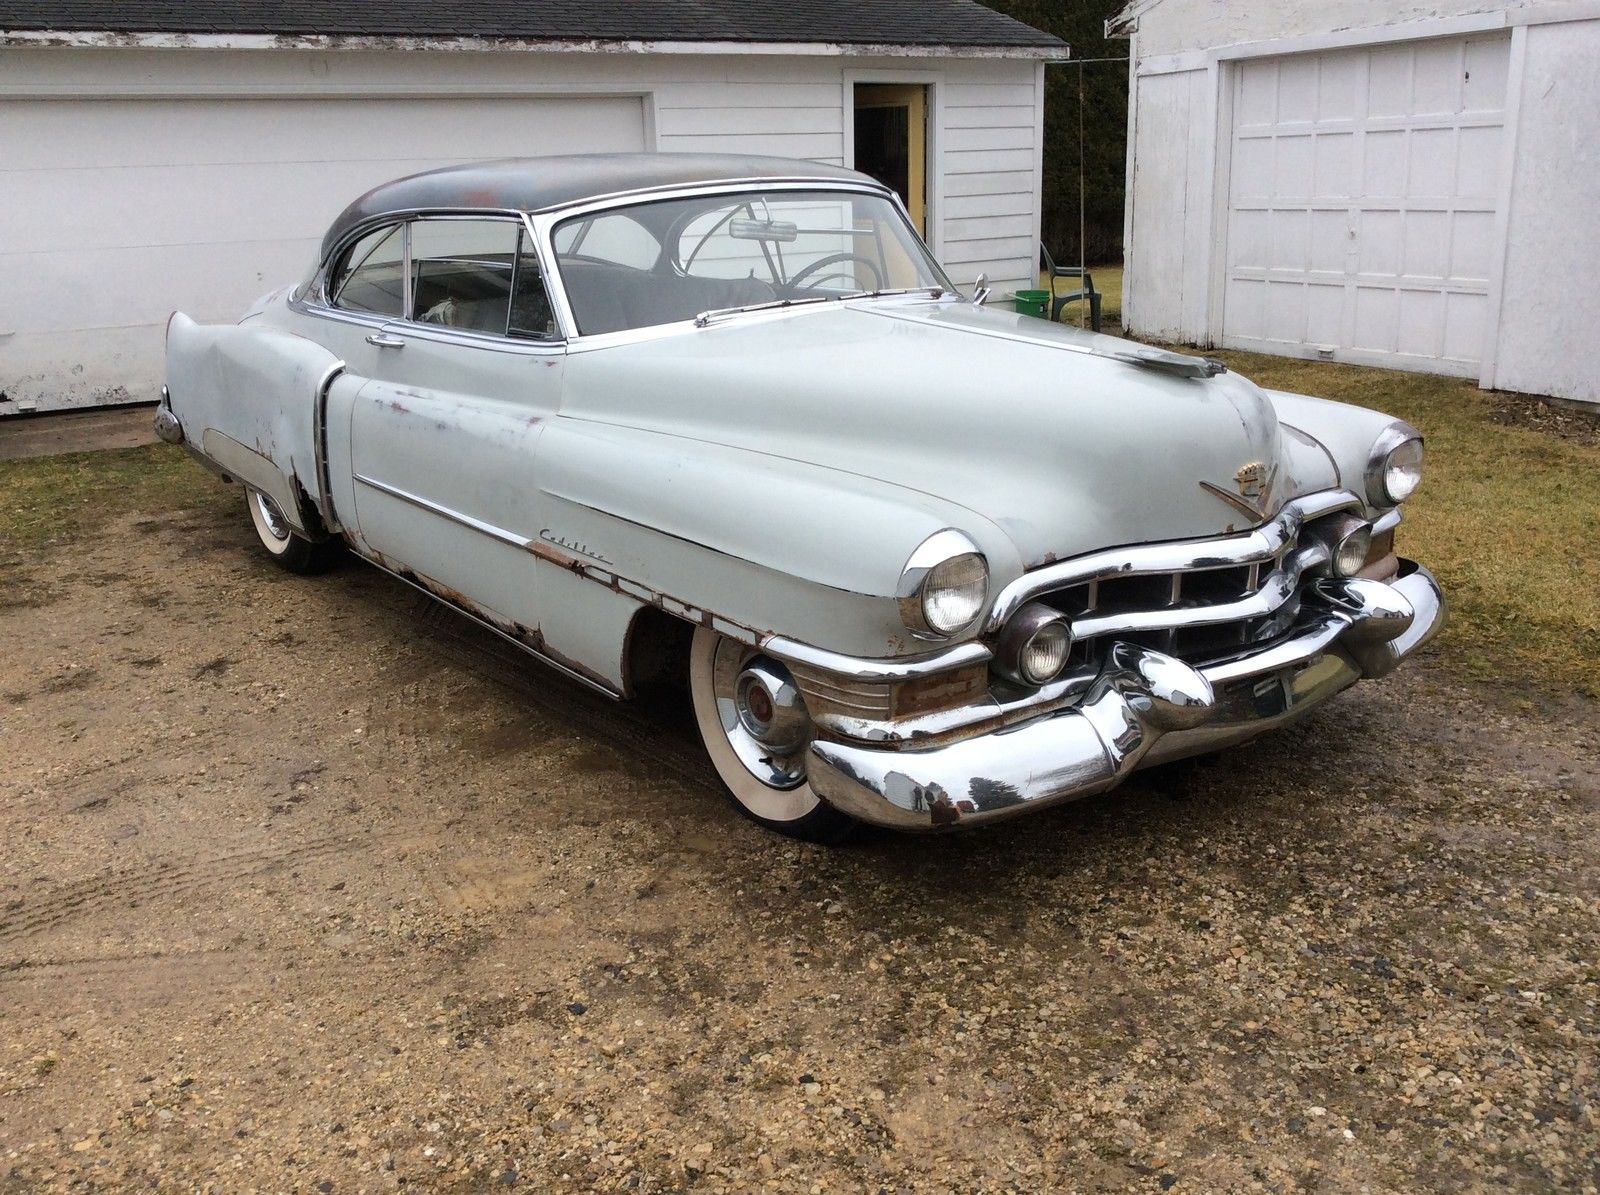 1952 cadillac coupe deville complete all original 58 000 miles 000 obo classic cadillac. Black Bedroom Furniture Sets. Home Design Ideas